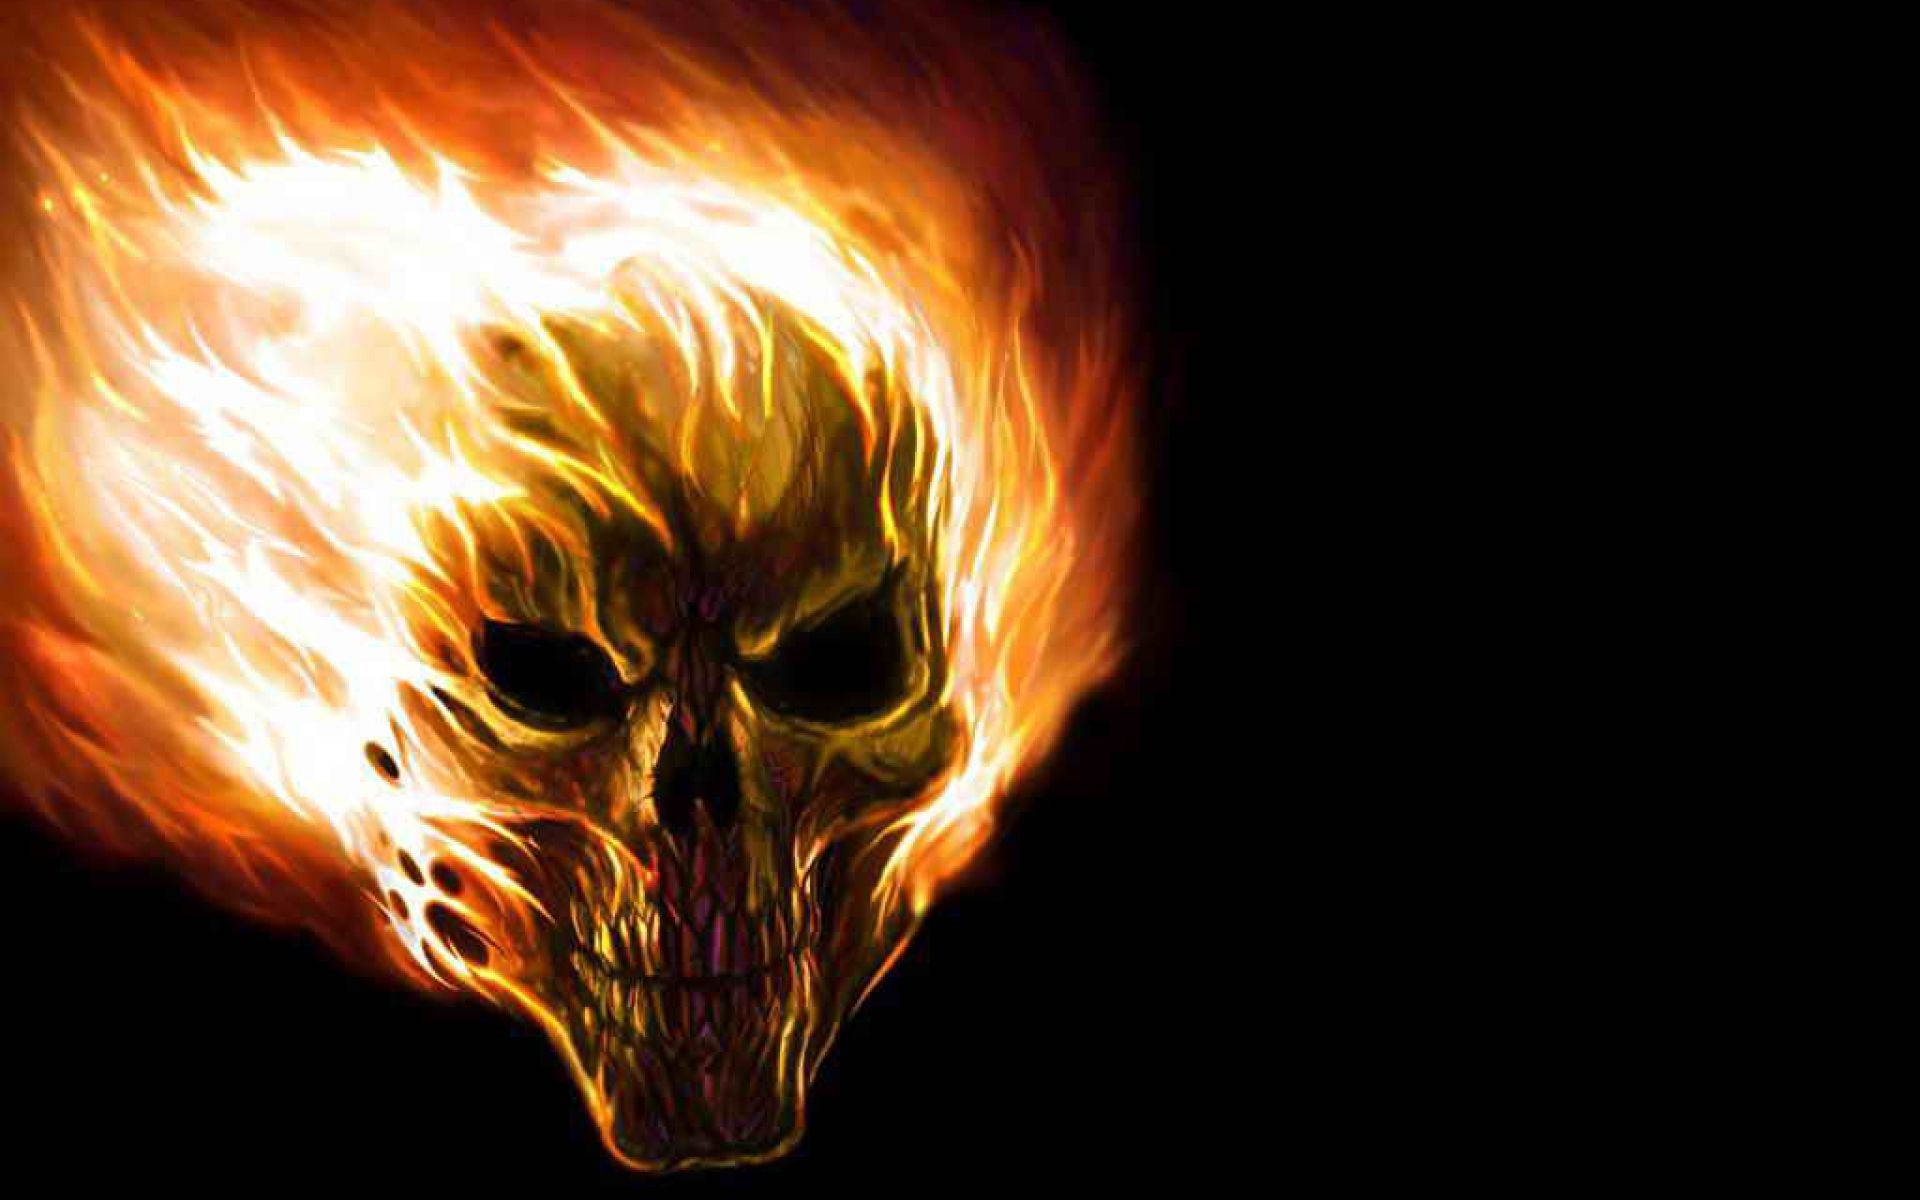 Mythical Flaming Skull #Awesome #cool #Fantasy #Flaming #Imagination #Mythical #